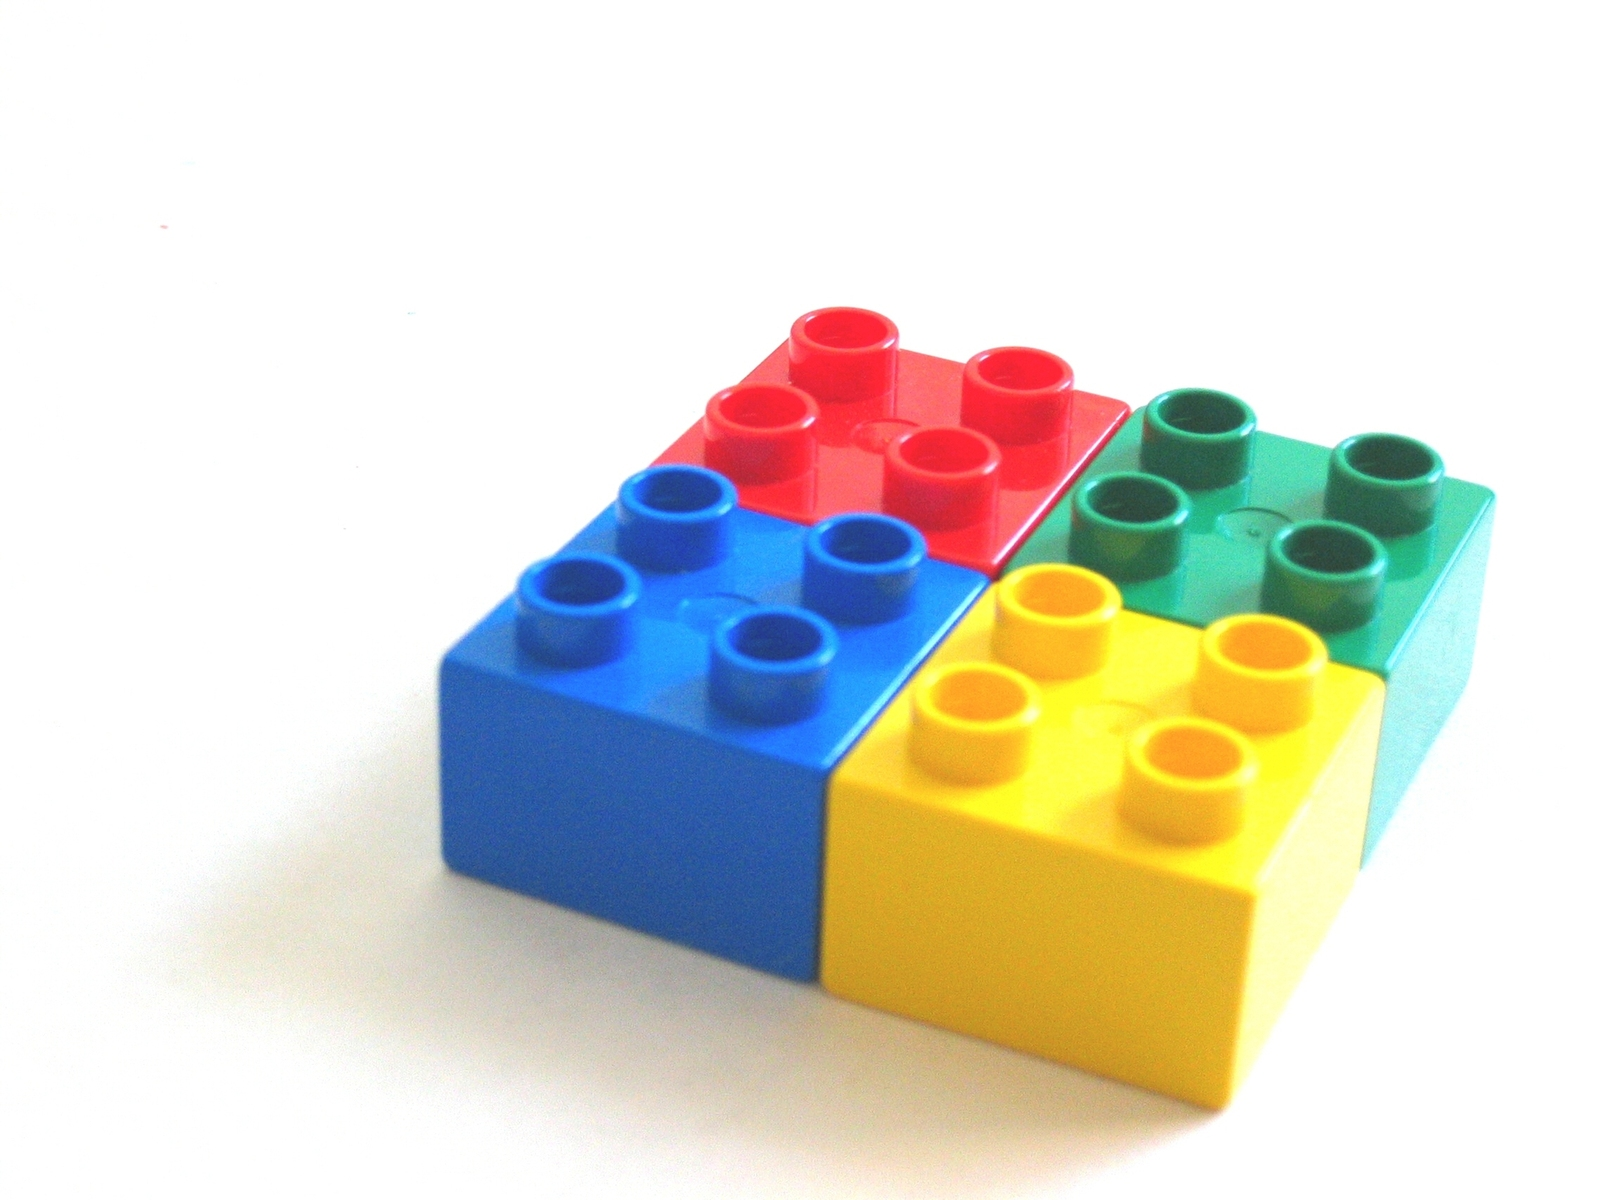 Building Blocks. Image by Jeff Prieb, FreeImages.com.